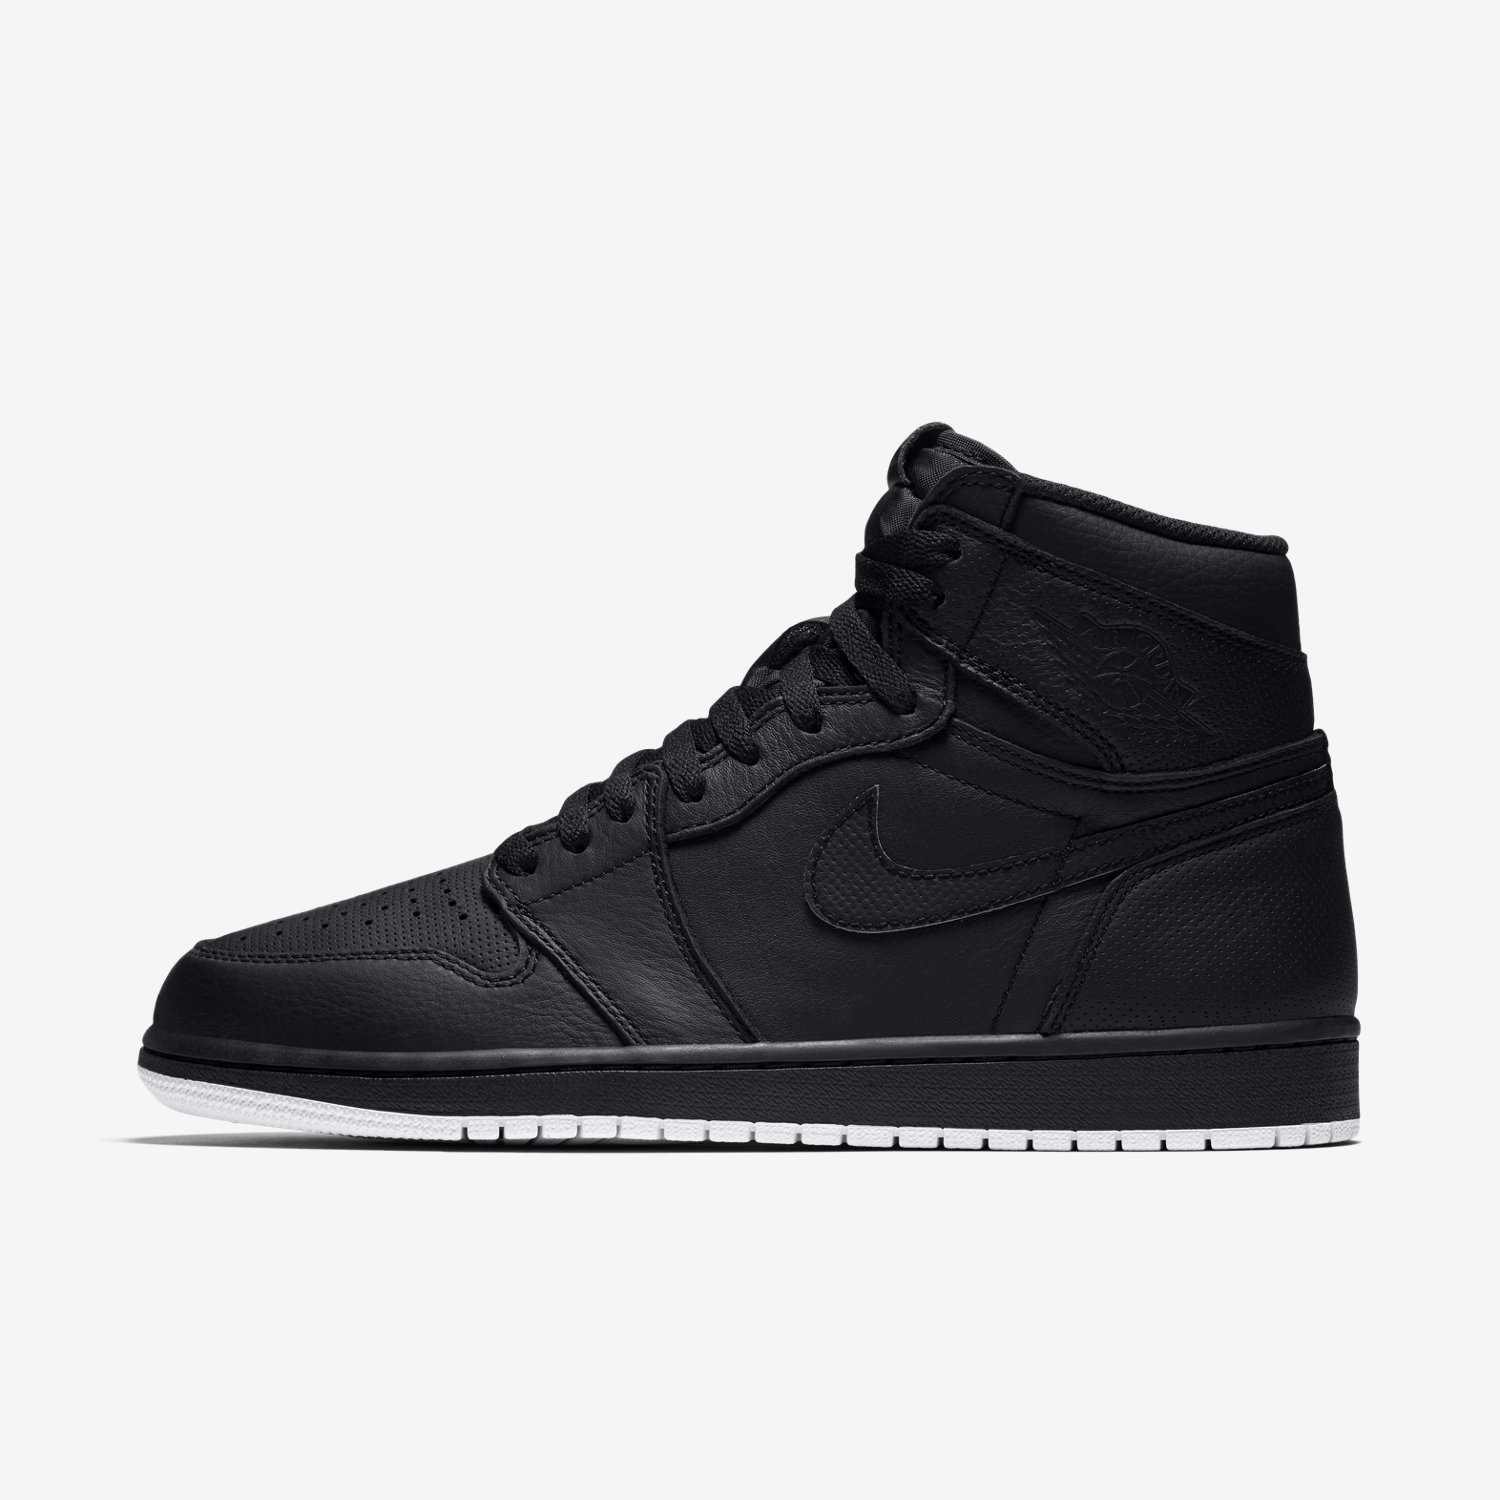 nike air jordan 1 retro high black